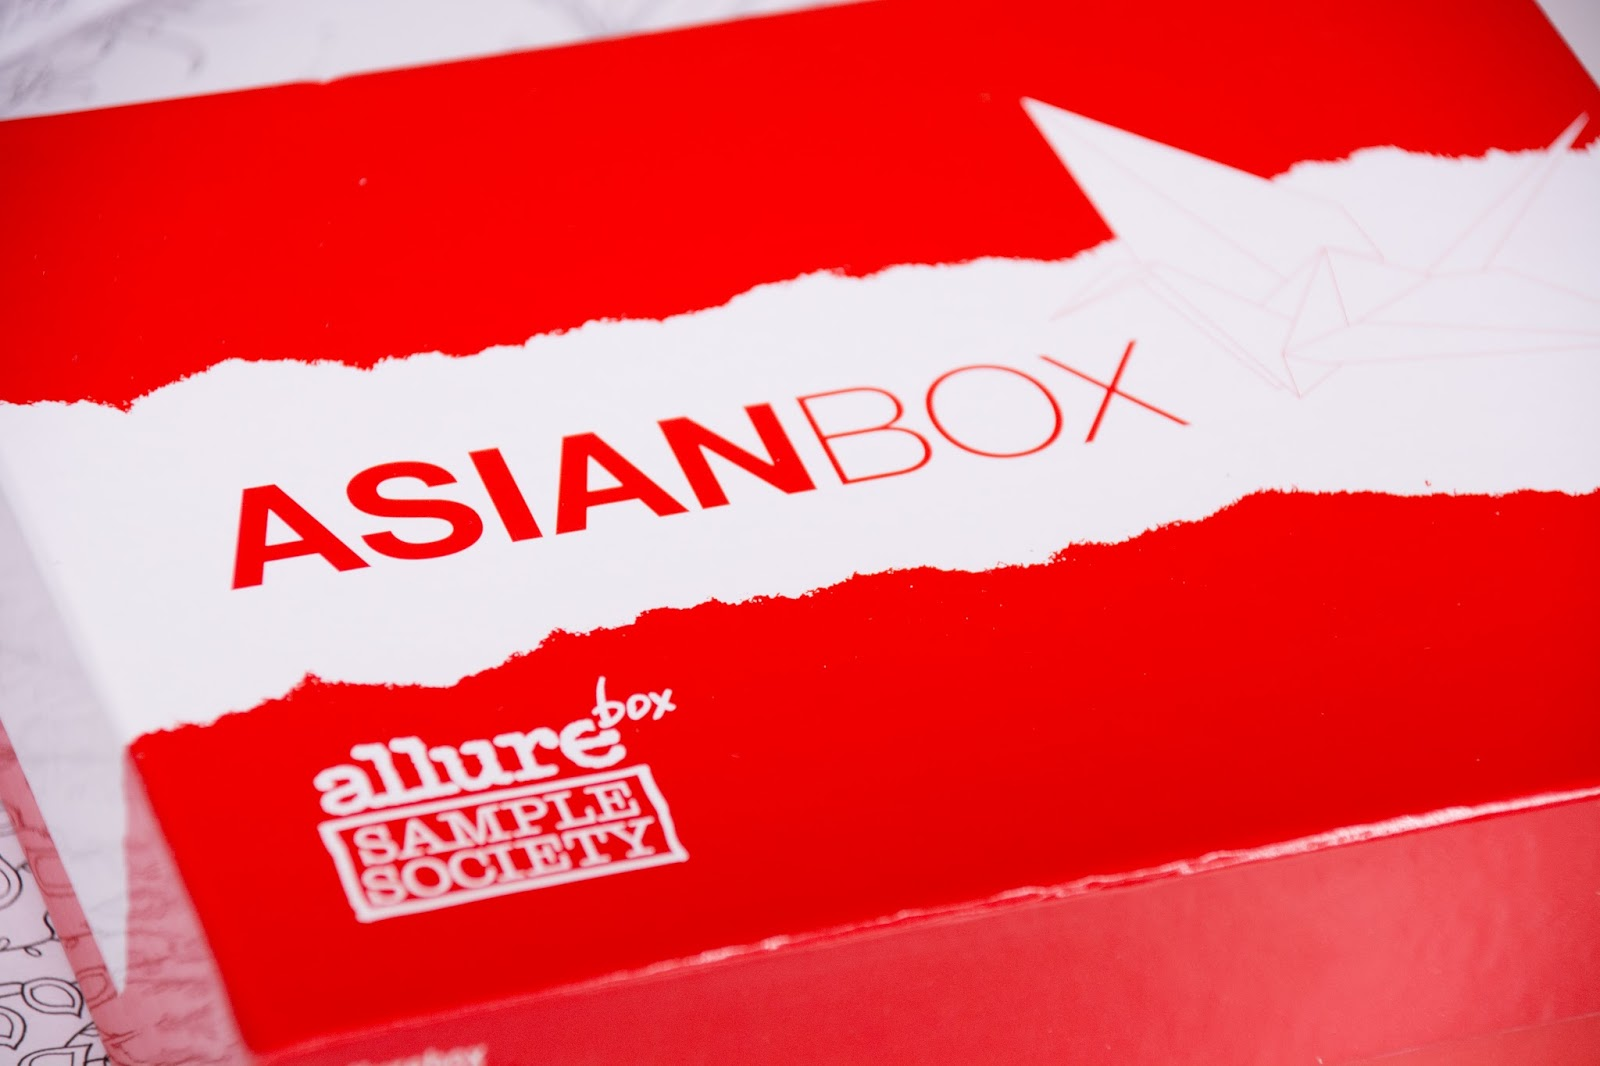 AsianBox состав